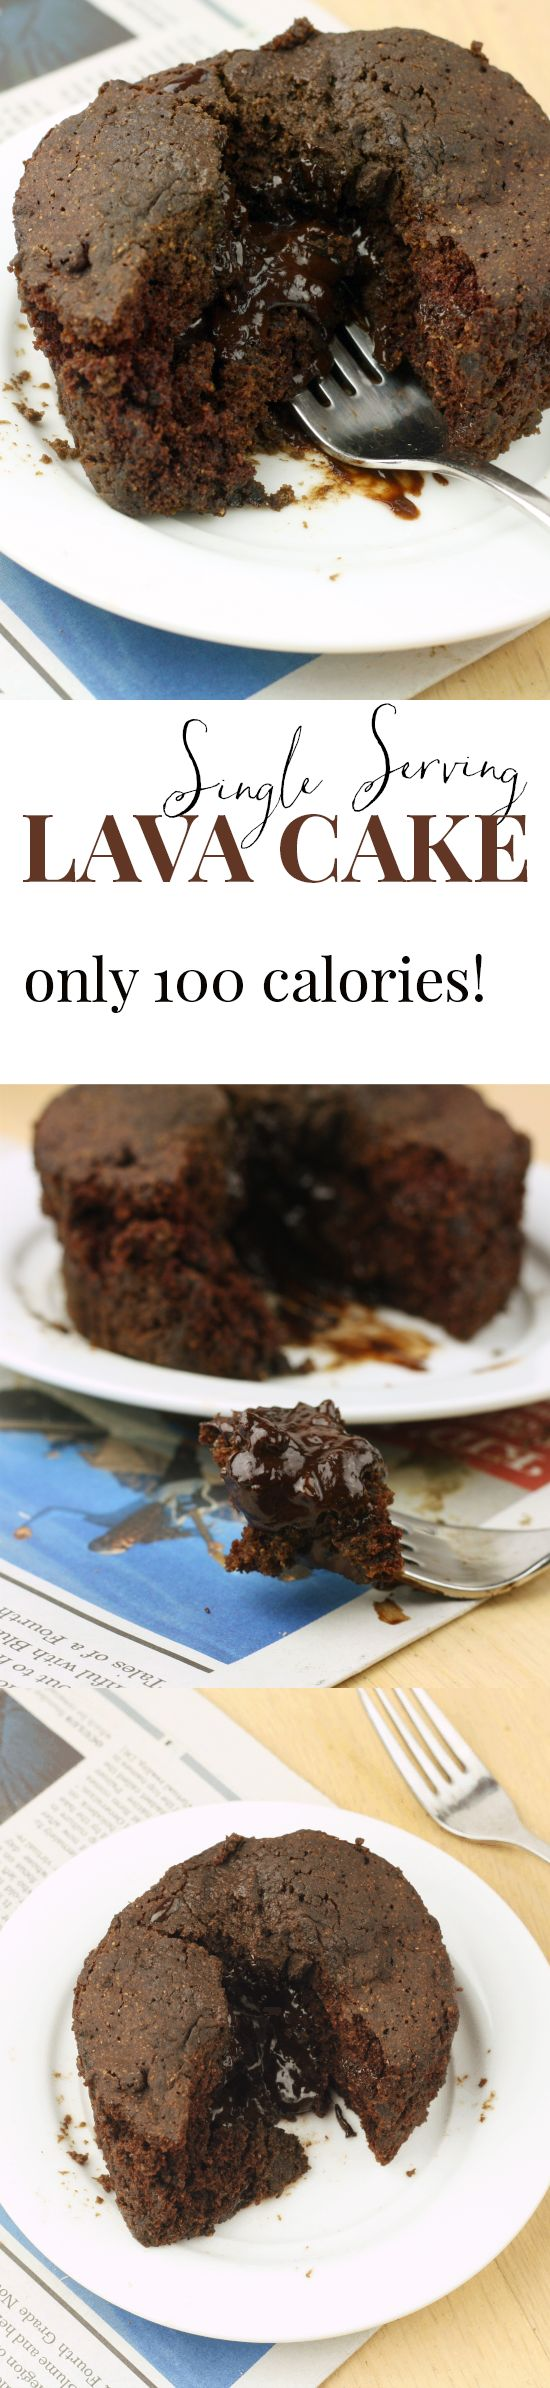 MAKE THIS NOW. Lava cake that's super rich and oozing with chocolate. 5 minutes. 120 calories. I love this so much.